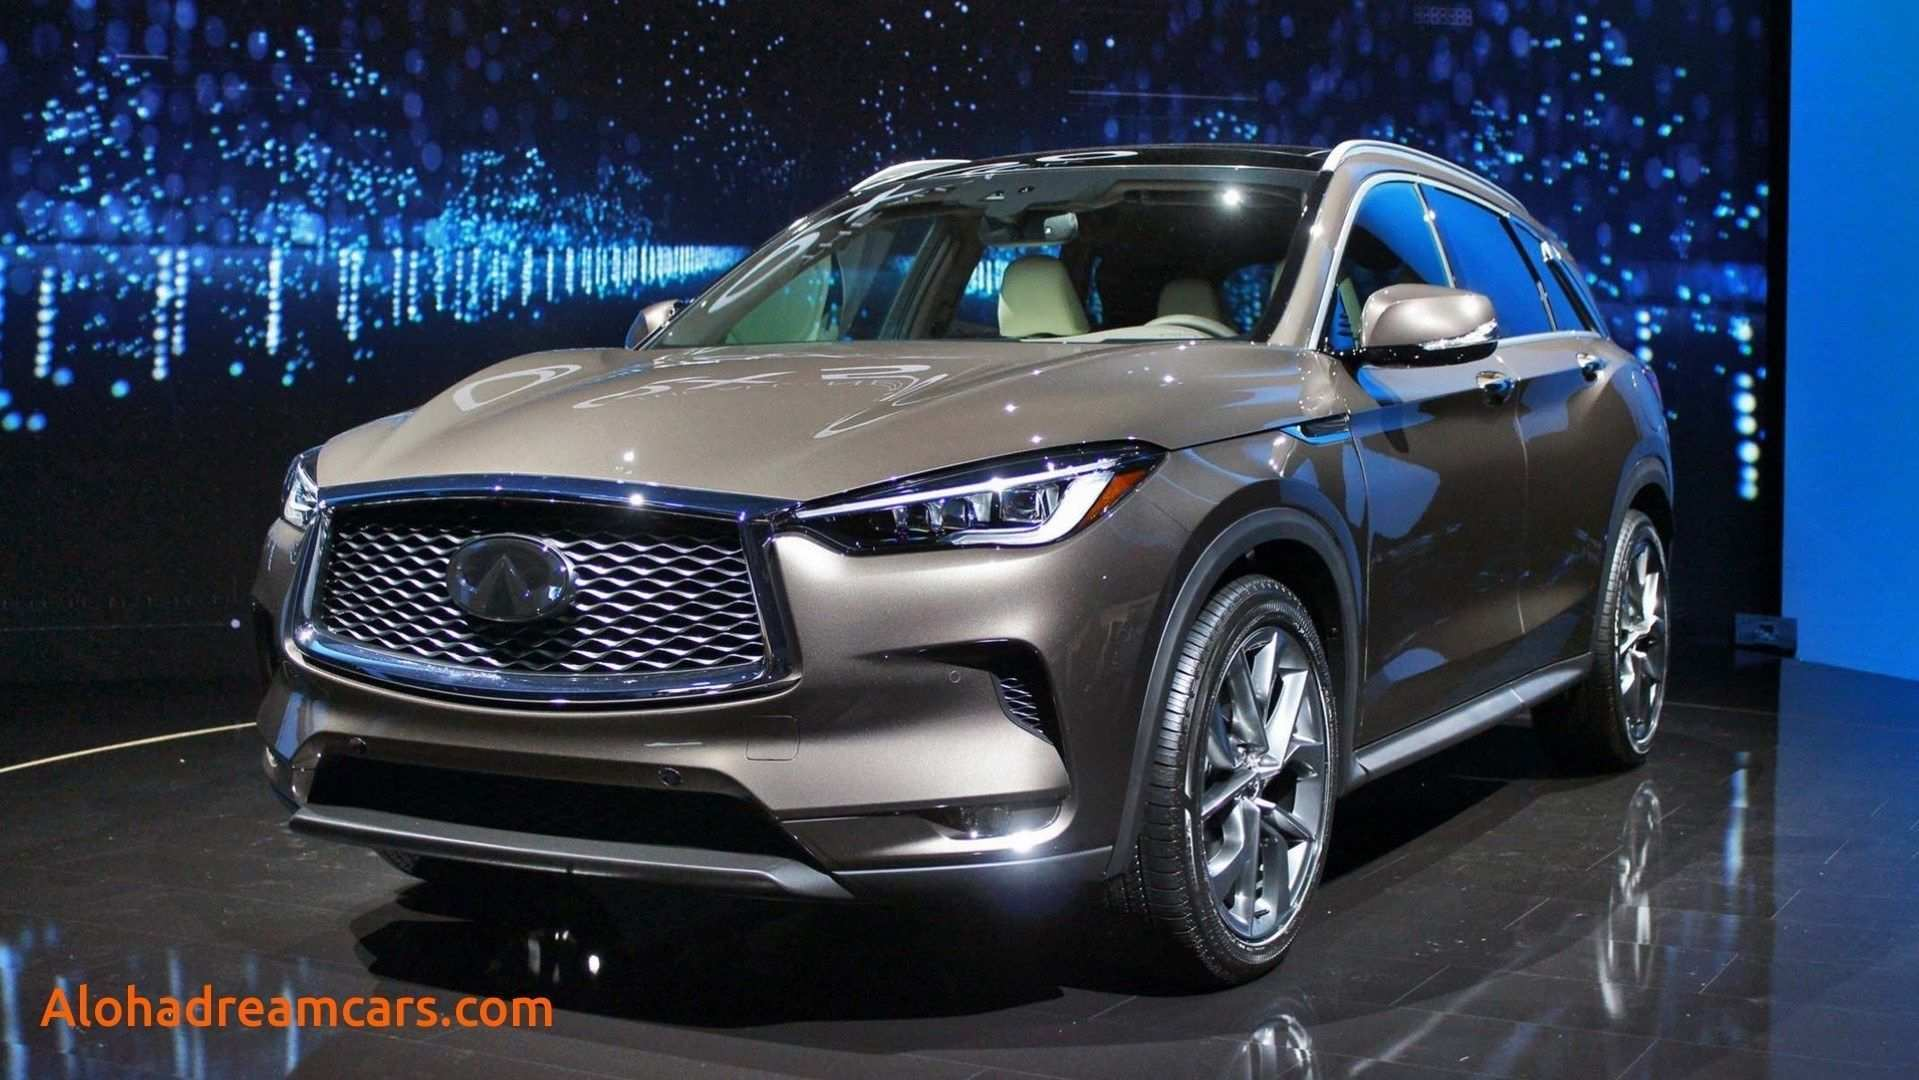 48 The 2020 Infiniti QX50 Price and Review for 2020 Infiniti QX50